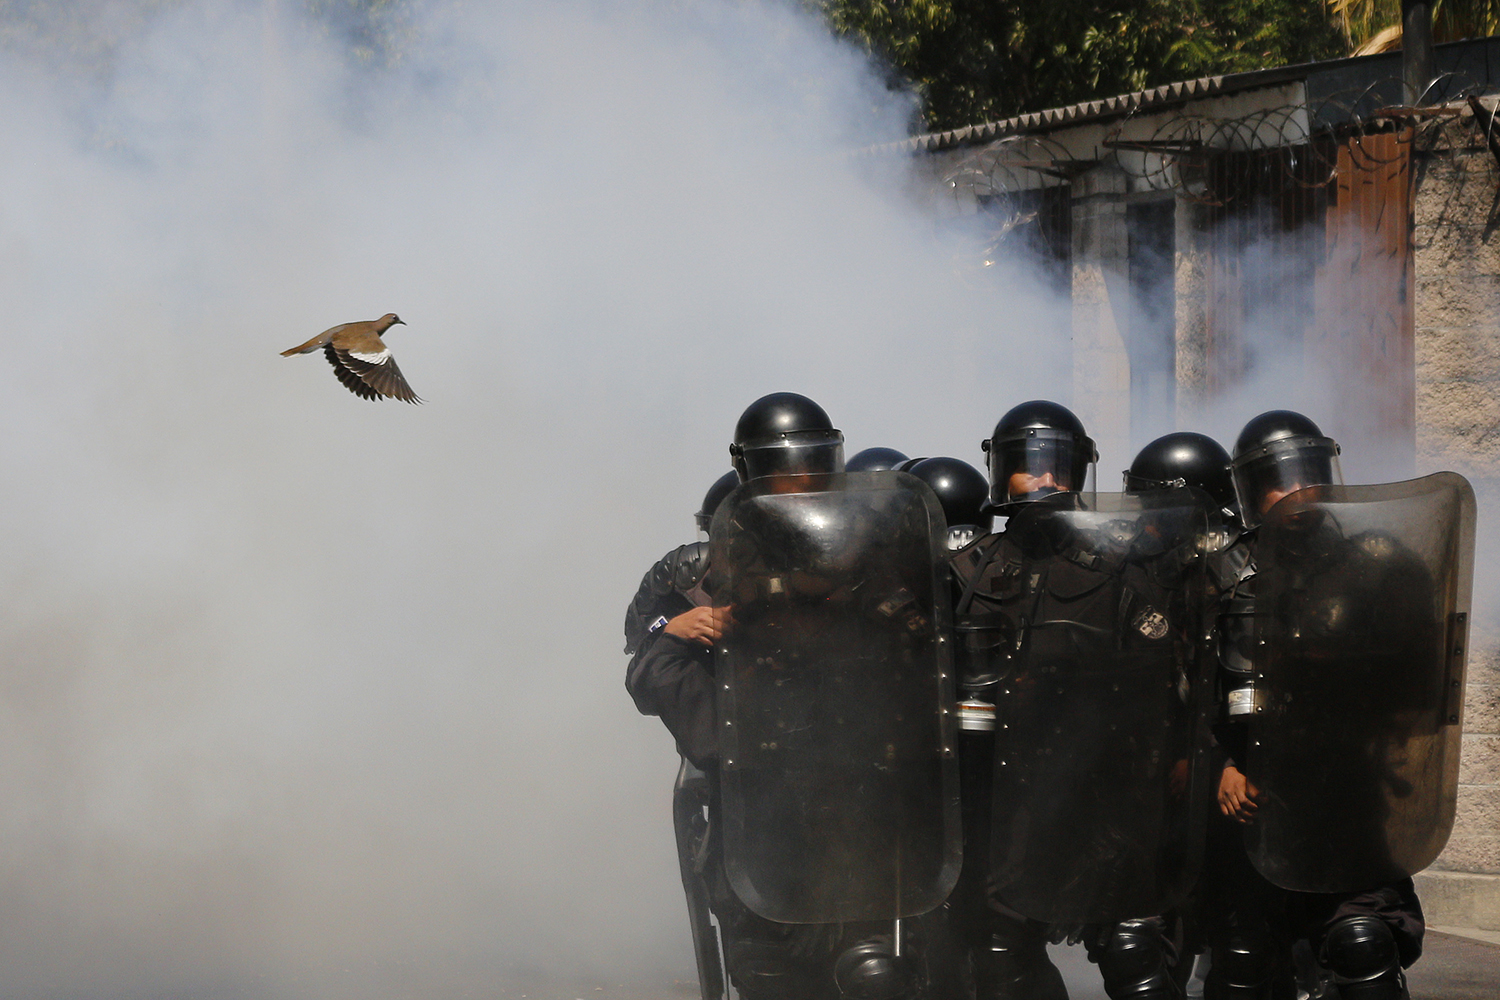 EL SALVADOR | A bird flies near riot police during a protest against an effort by El Salvador's National Congress to put the water service in the hands of the private sector in San Salvador on March 20. Alex Peña/Getty Images